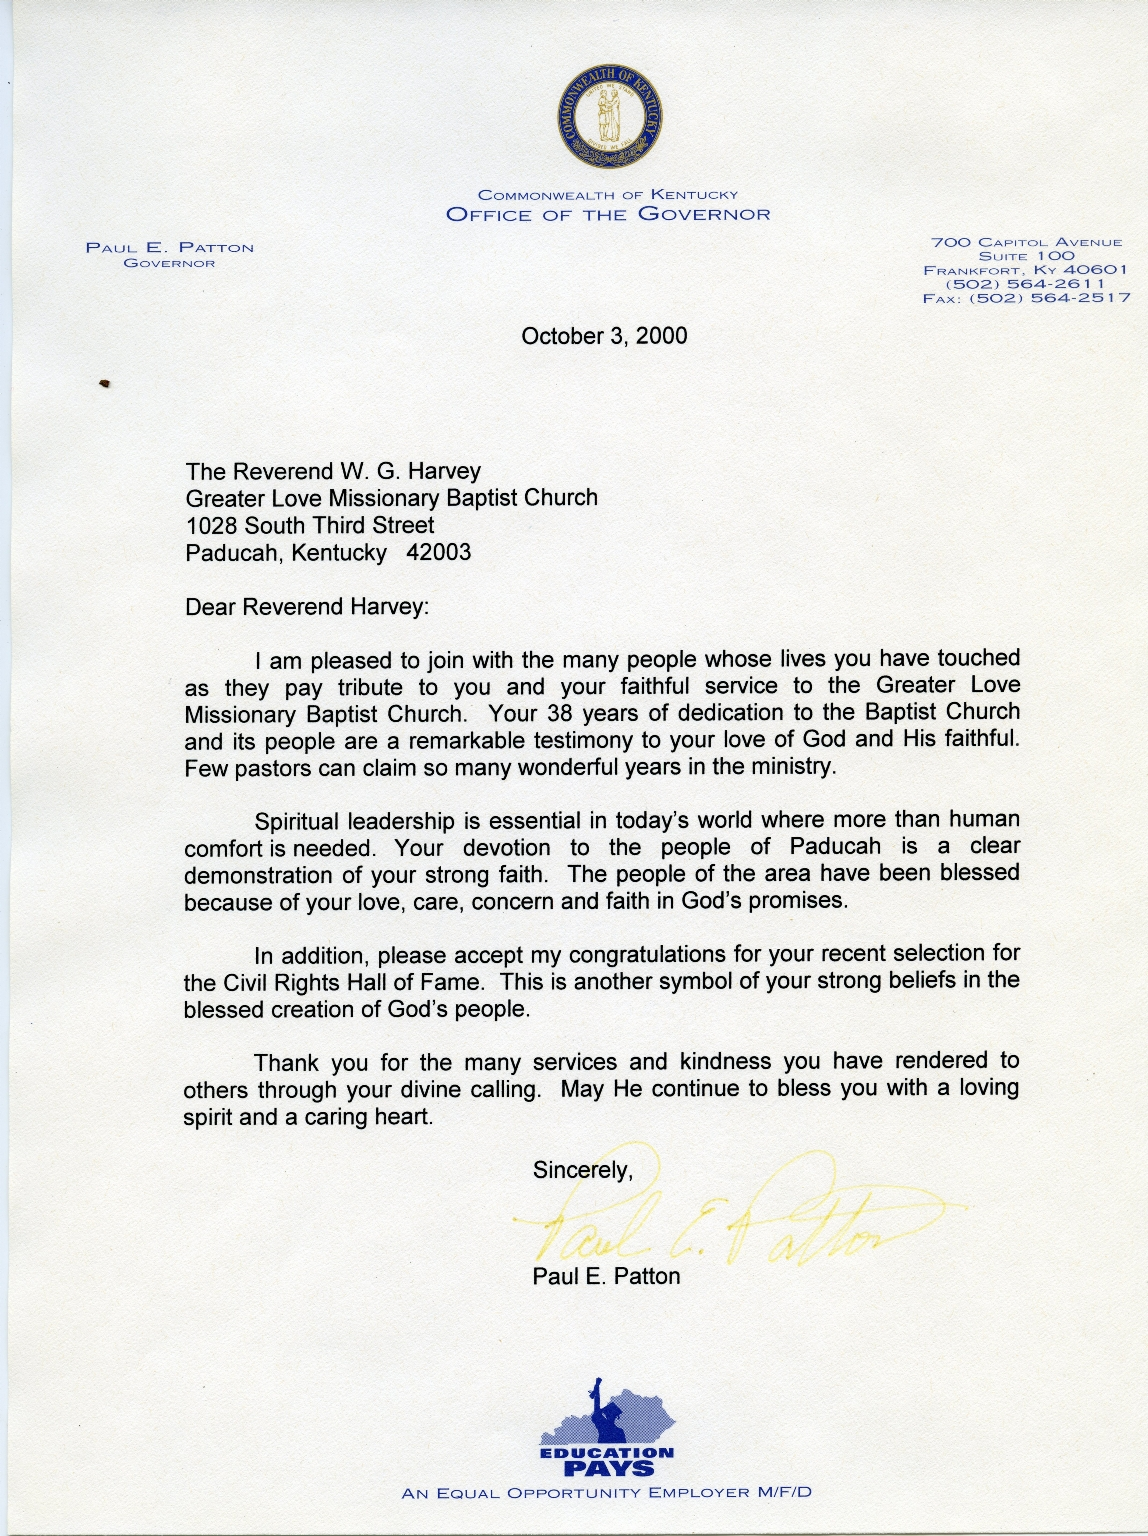 KY Governor Paul Patton Congratulatory Letter to W.G. Harvey